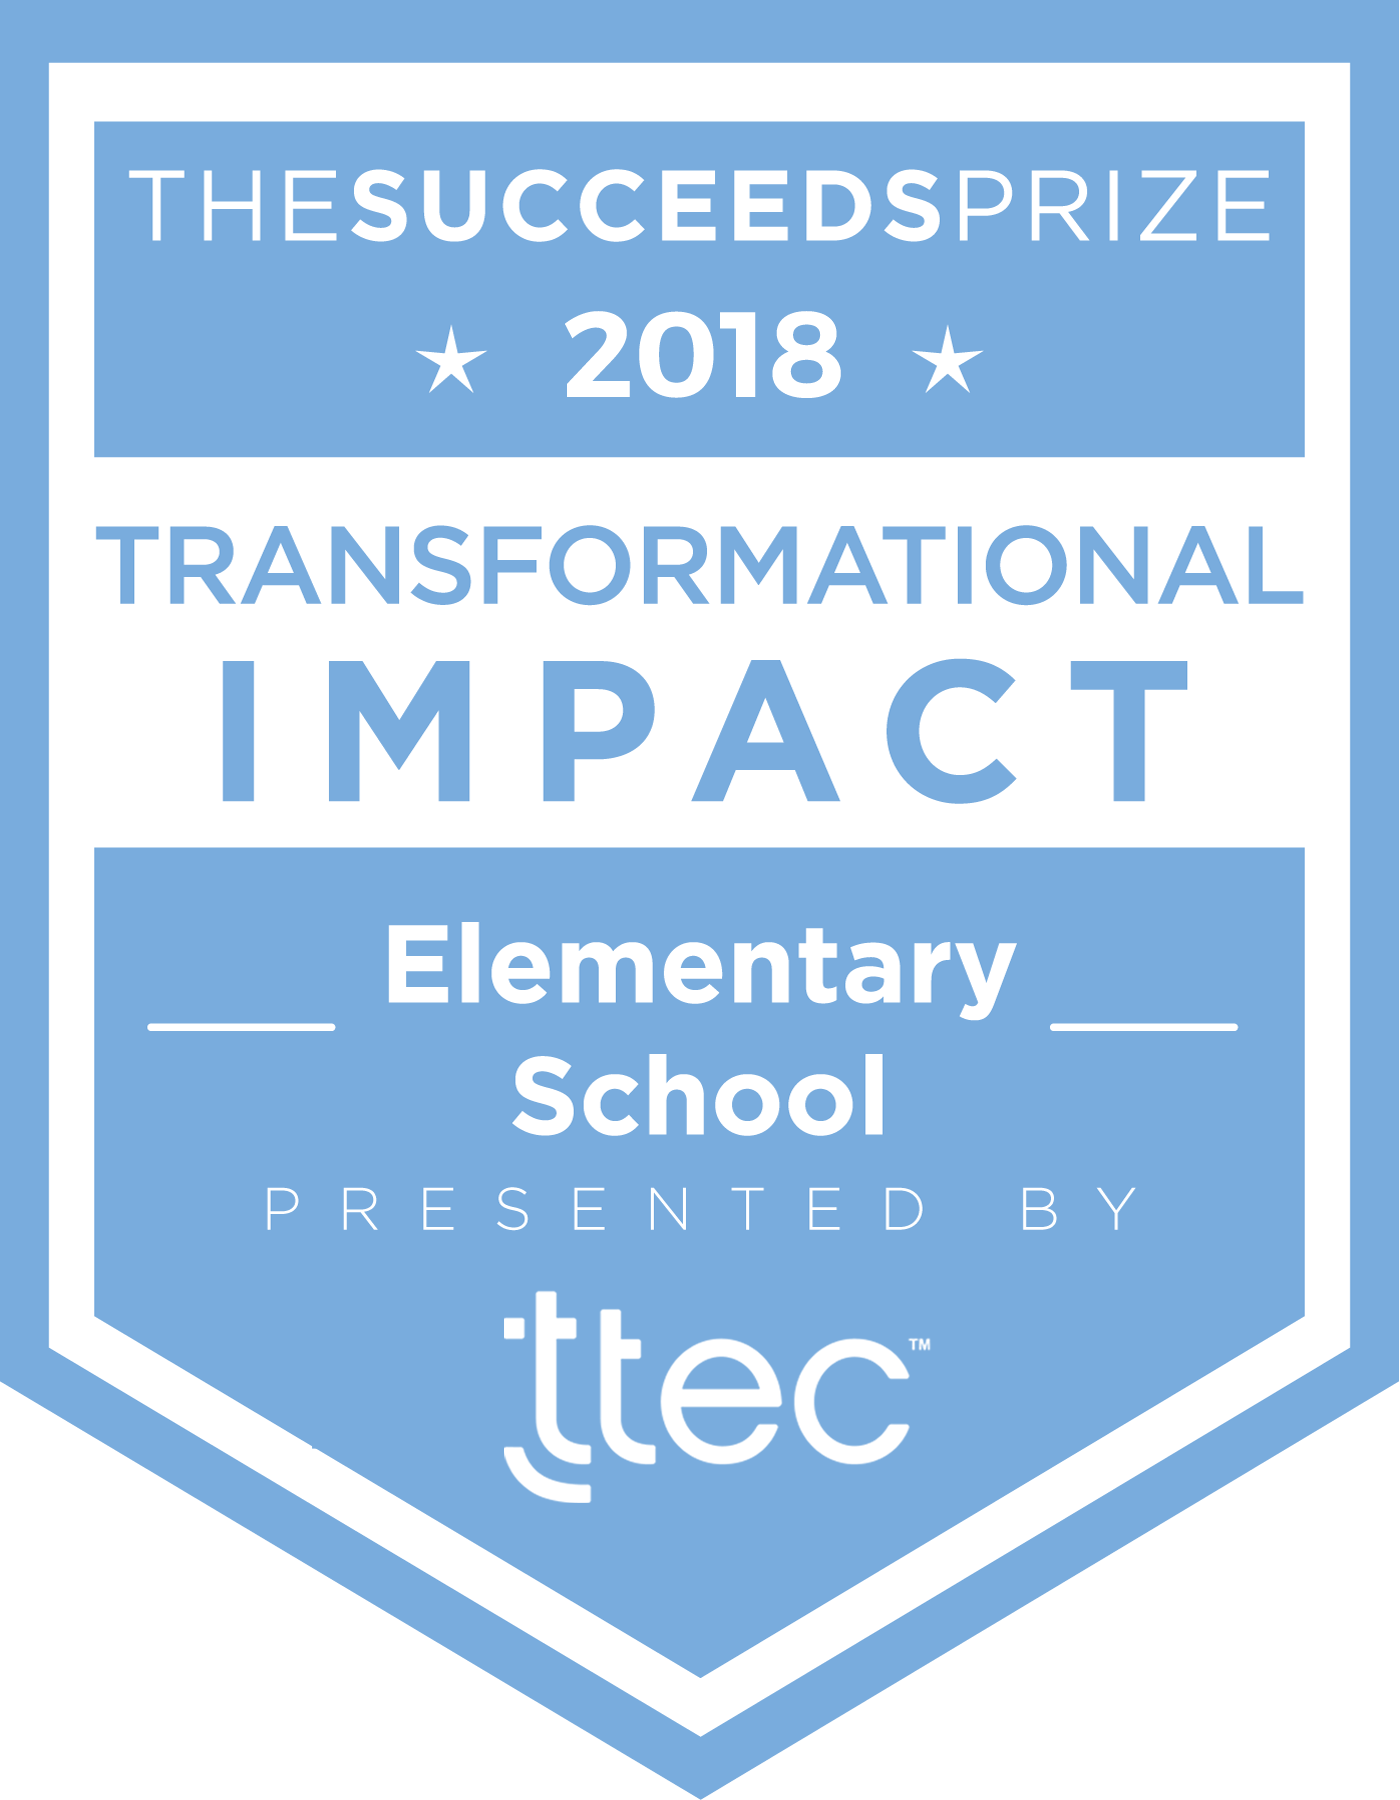 Transformational Impact in an Elementary School (grades K-5)